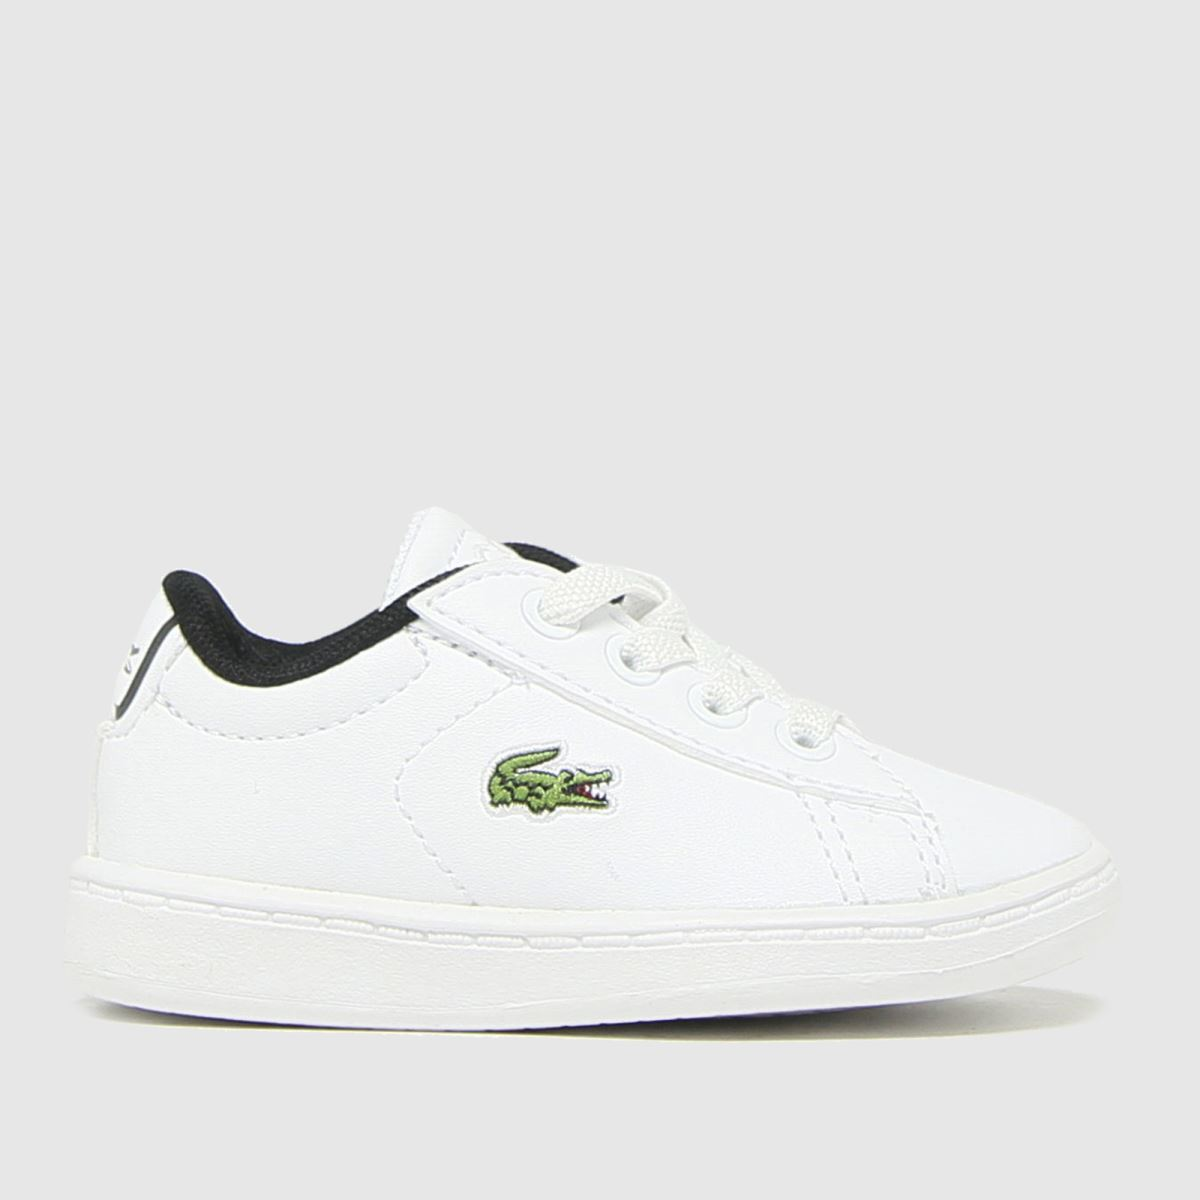 Lacoste White & Black Carnaby Evo Trainers Toddler